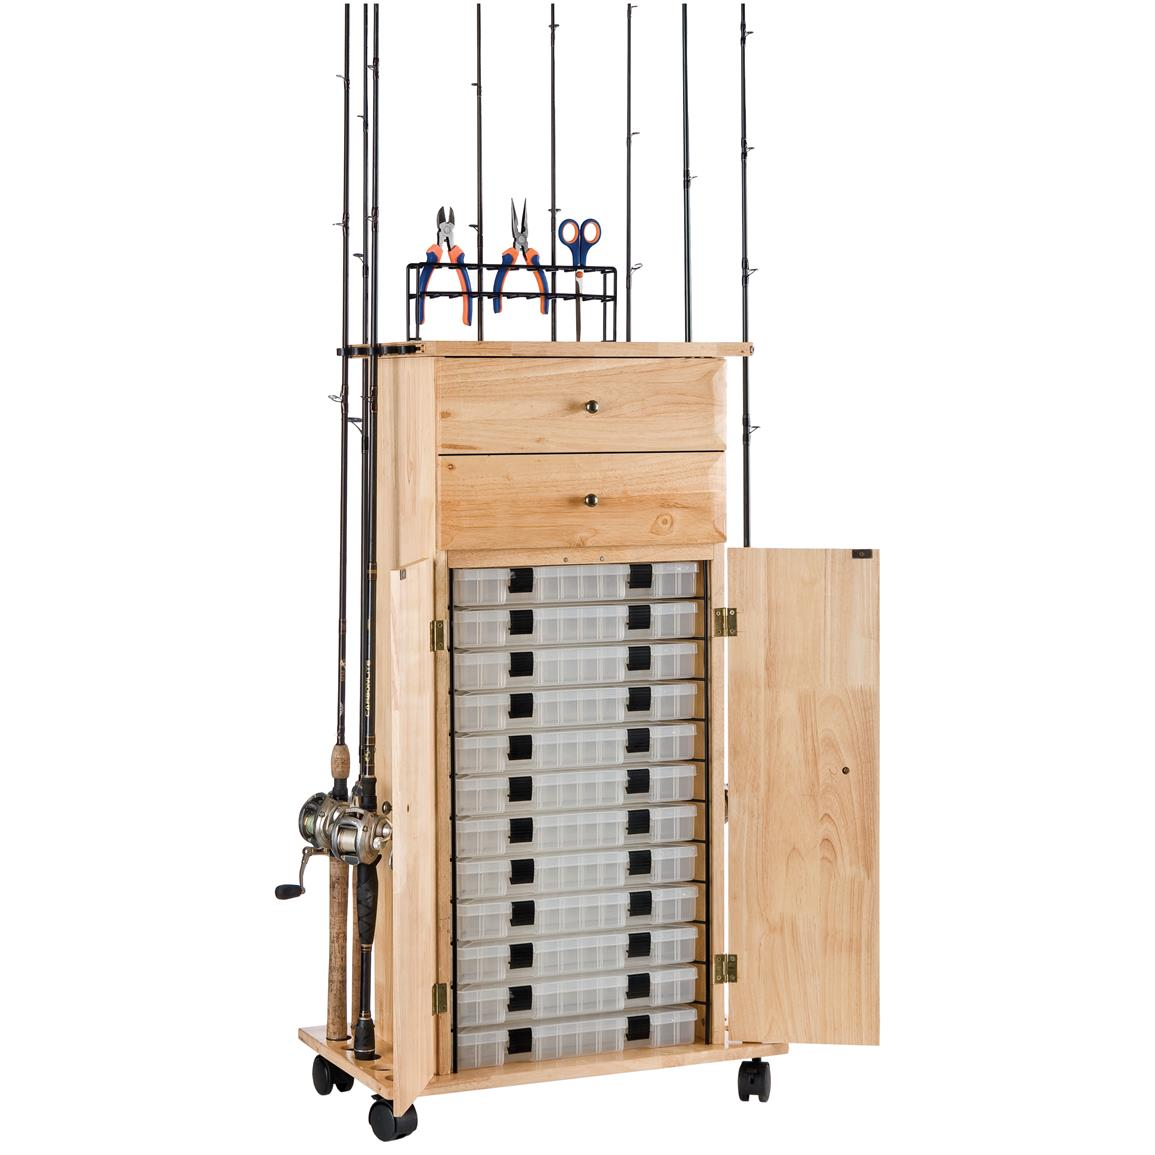 Organized Fishing 18-Rod Narrow Floor Cabinet with 4 Tackle Drawers